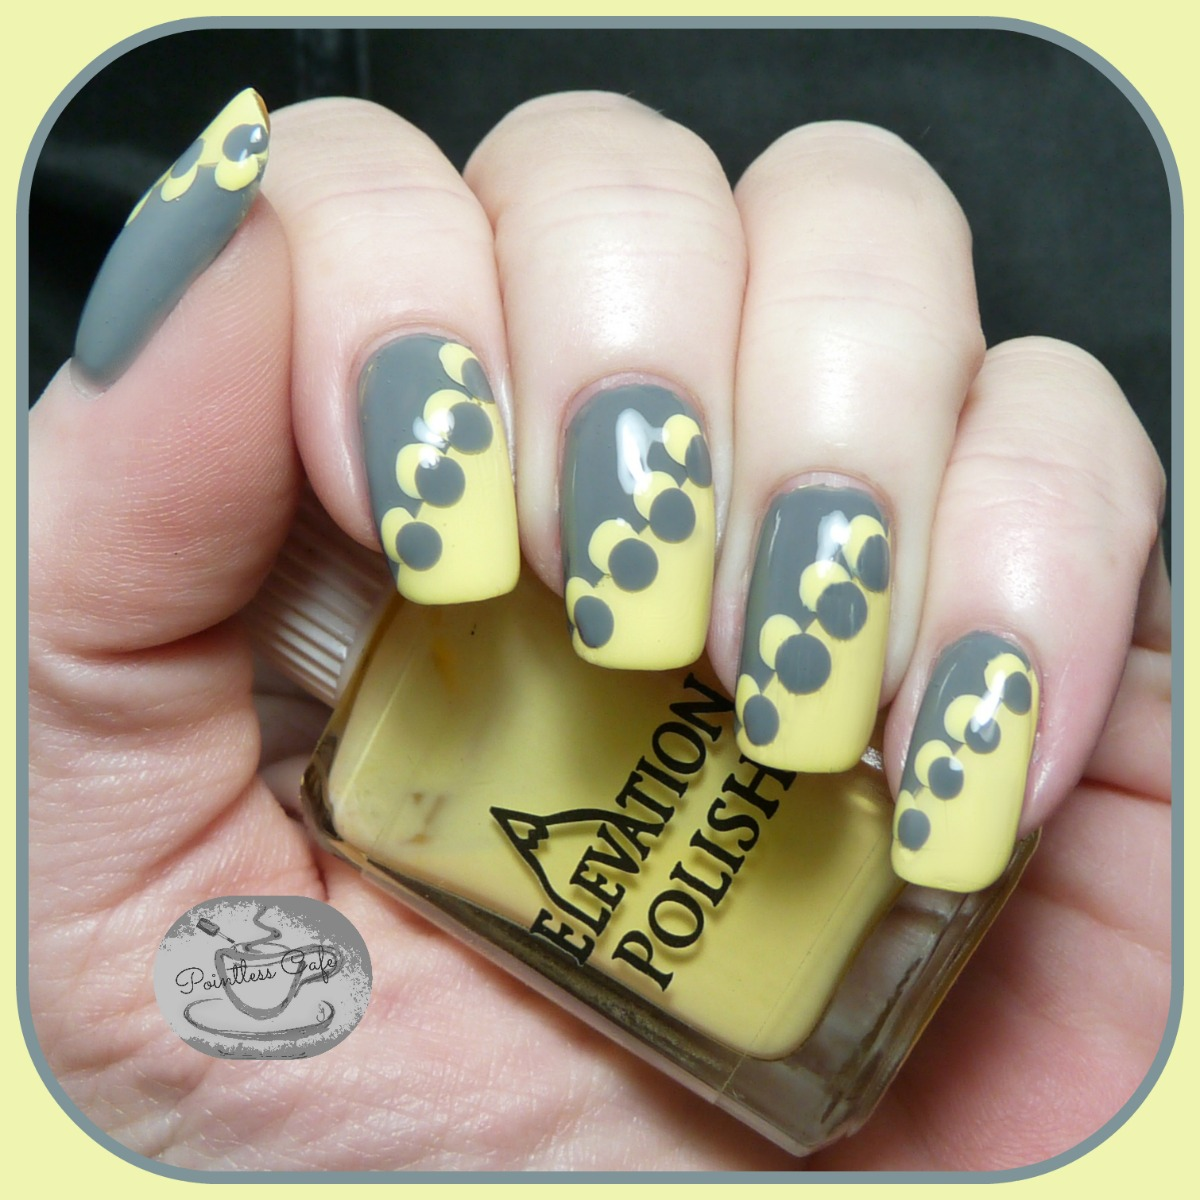 13 Days of January Nail Art Challenge: Inspired by Pinterest ...